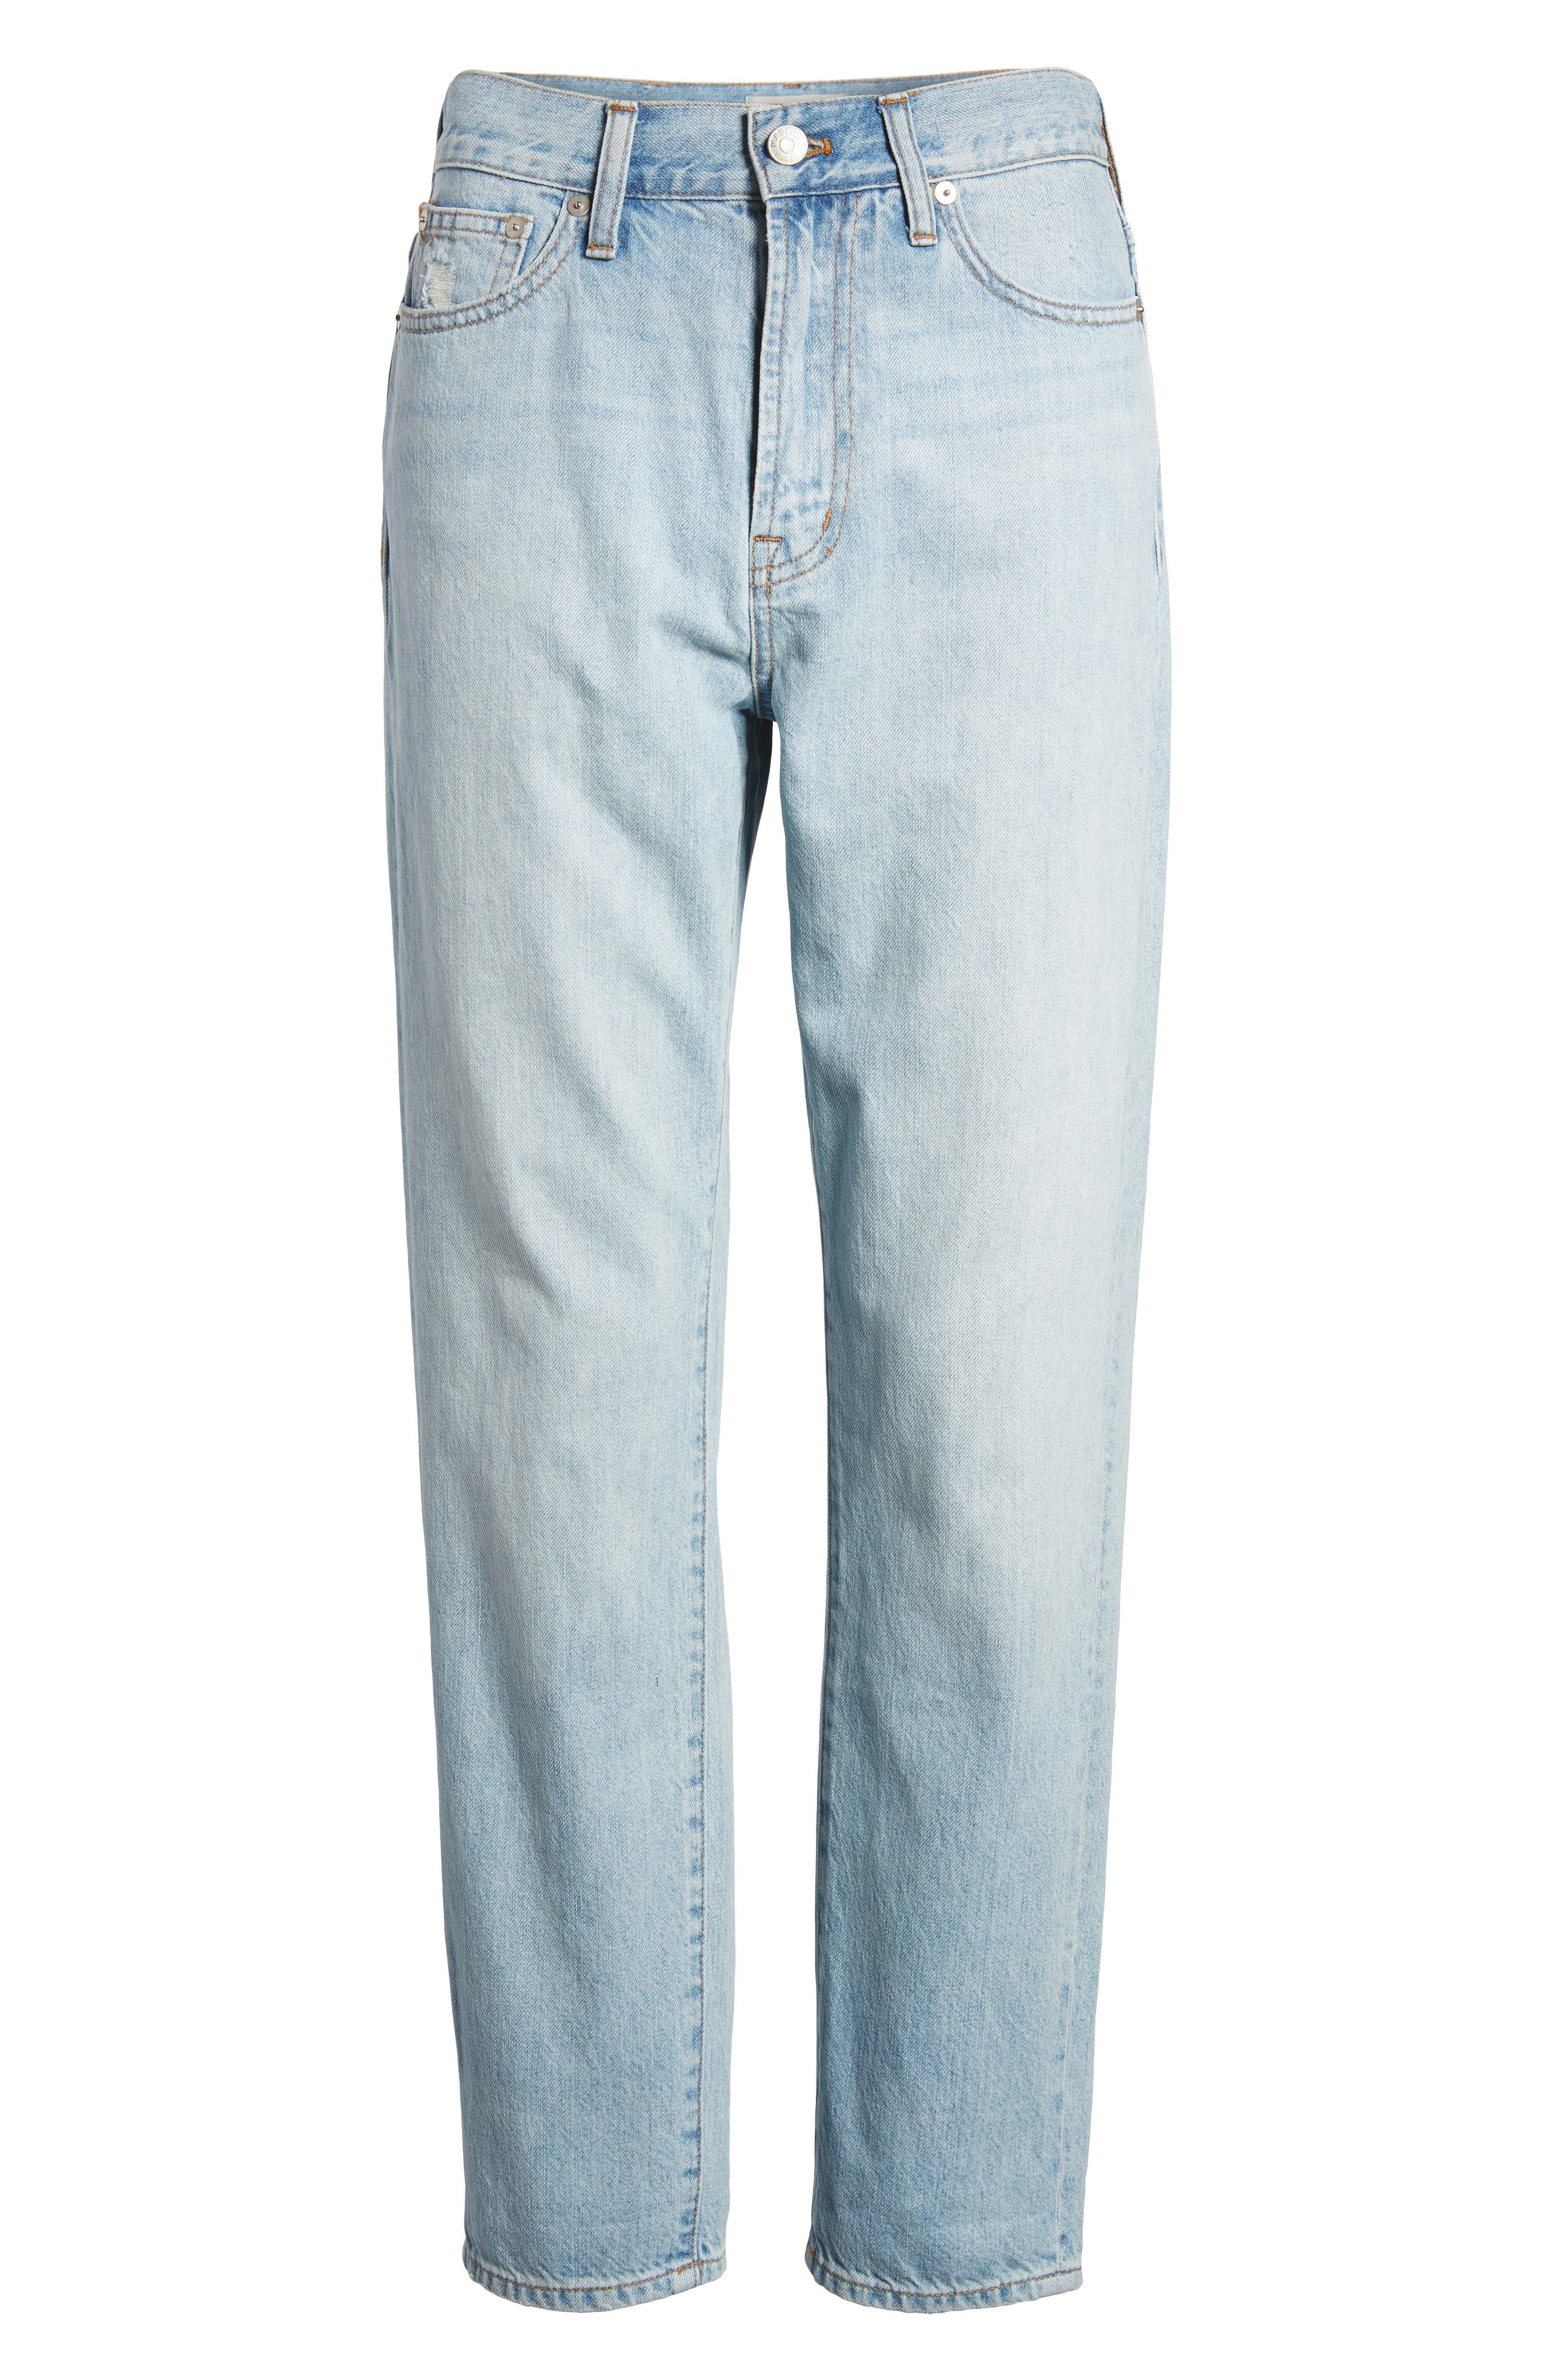 MADEWELL, 'Perfect Summer' High Rise Ankle Jeans, Alternate thumbnail 11, color, FITZGERALD WASH